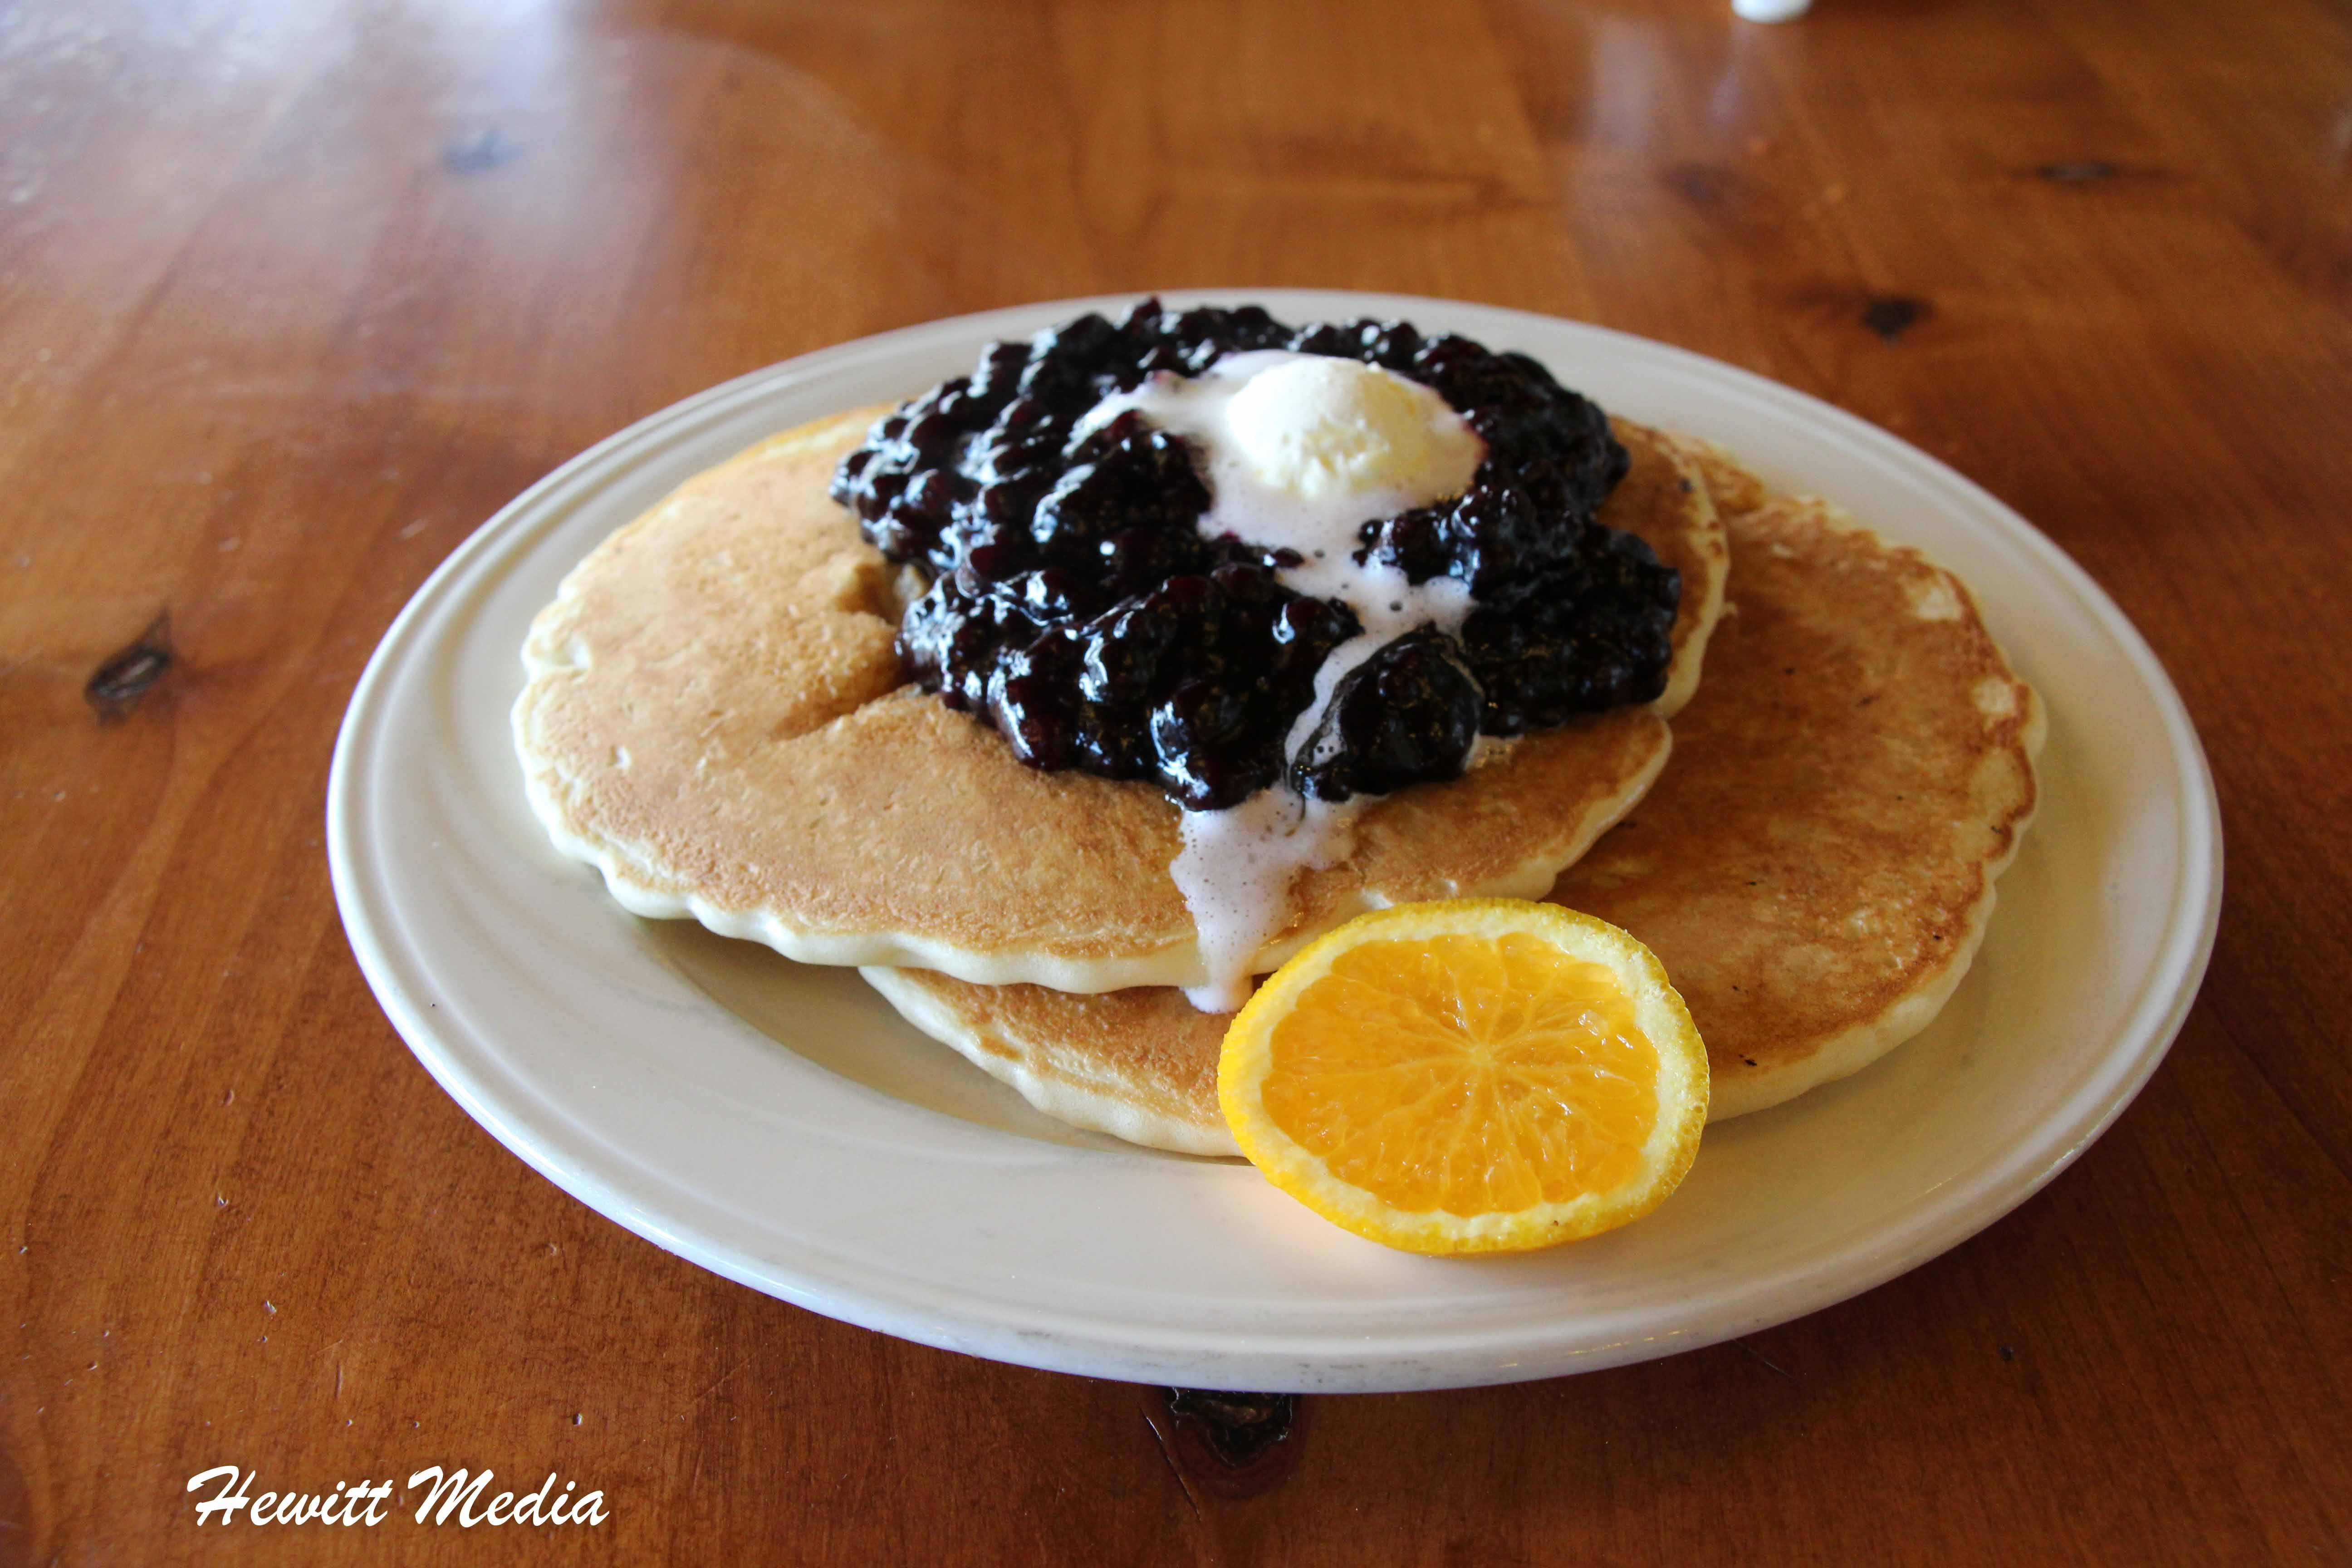 Blueberry Pancakes at Leek's Restaurant